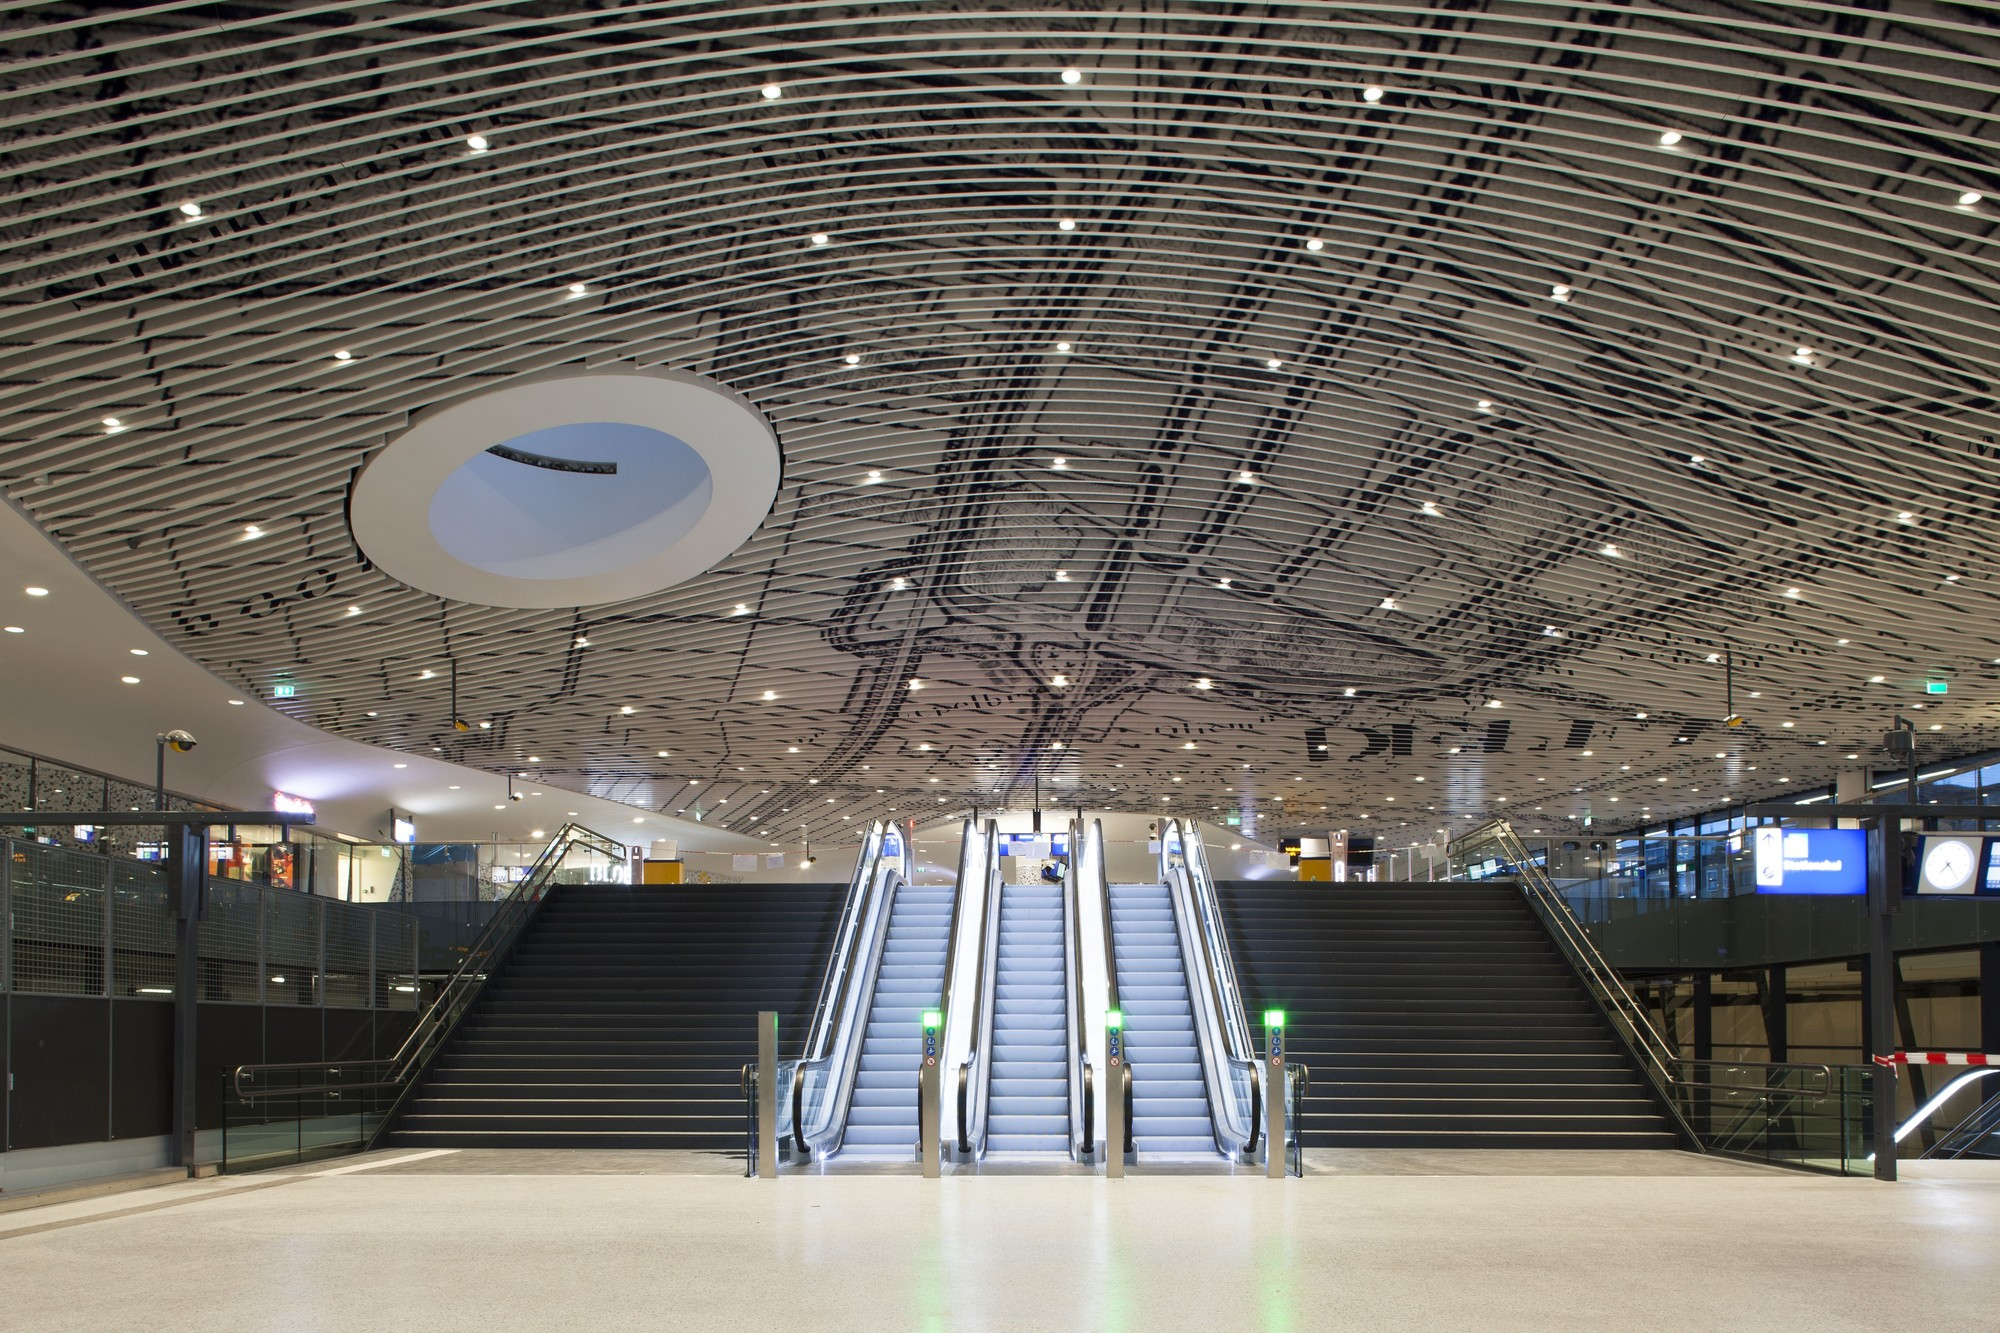 Mecanoo's New Delft Station Hall Opens To The Public, Arrival into the 'vaulted' station hall. Image Courtesy of Mecanoo